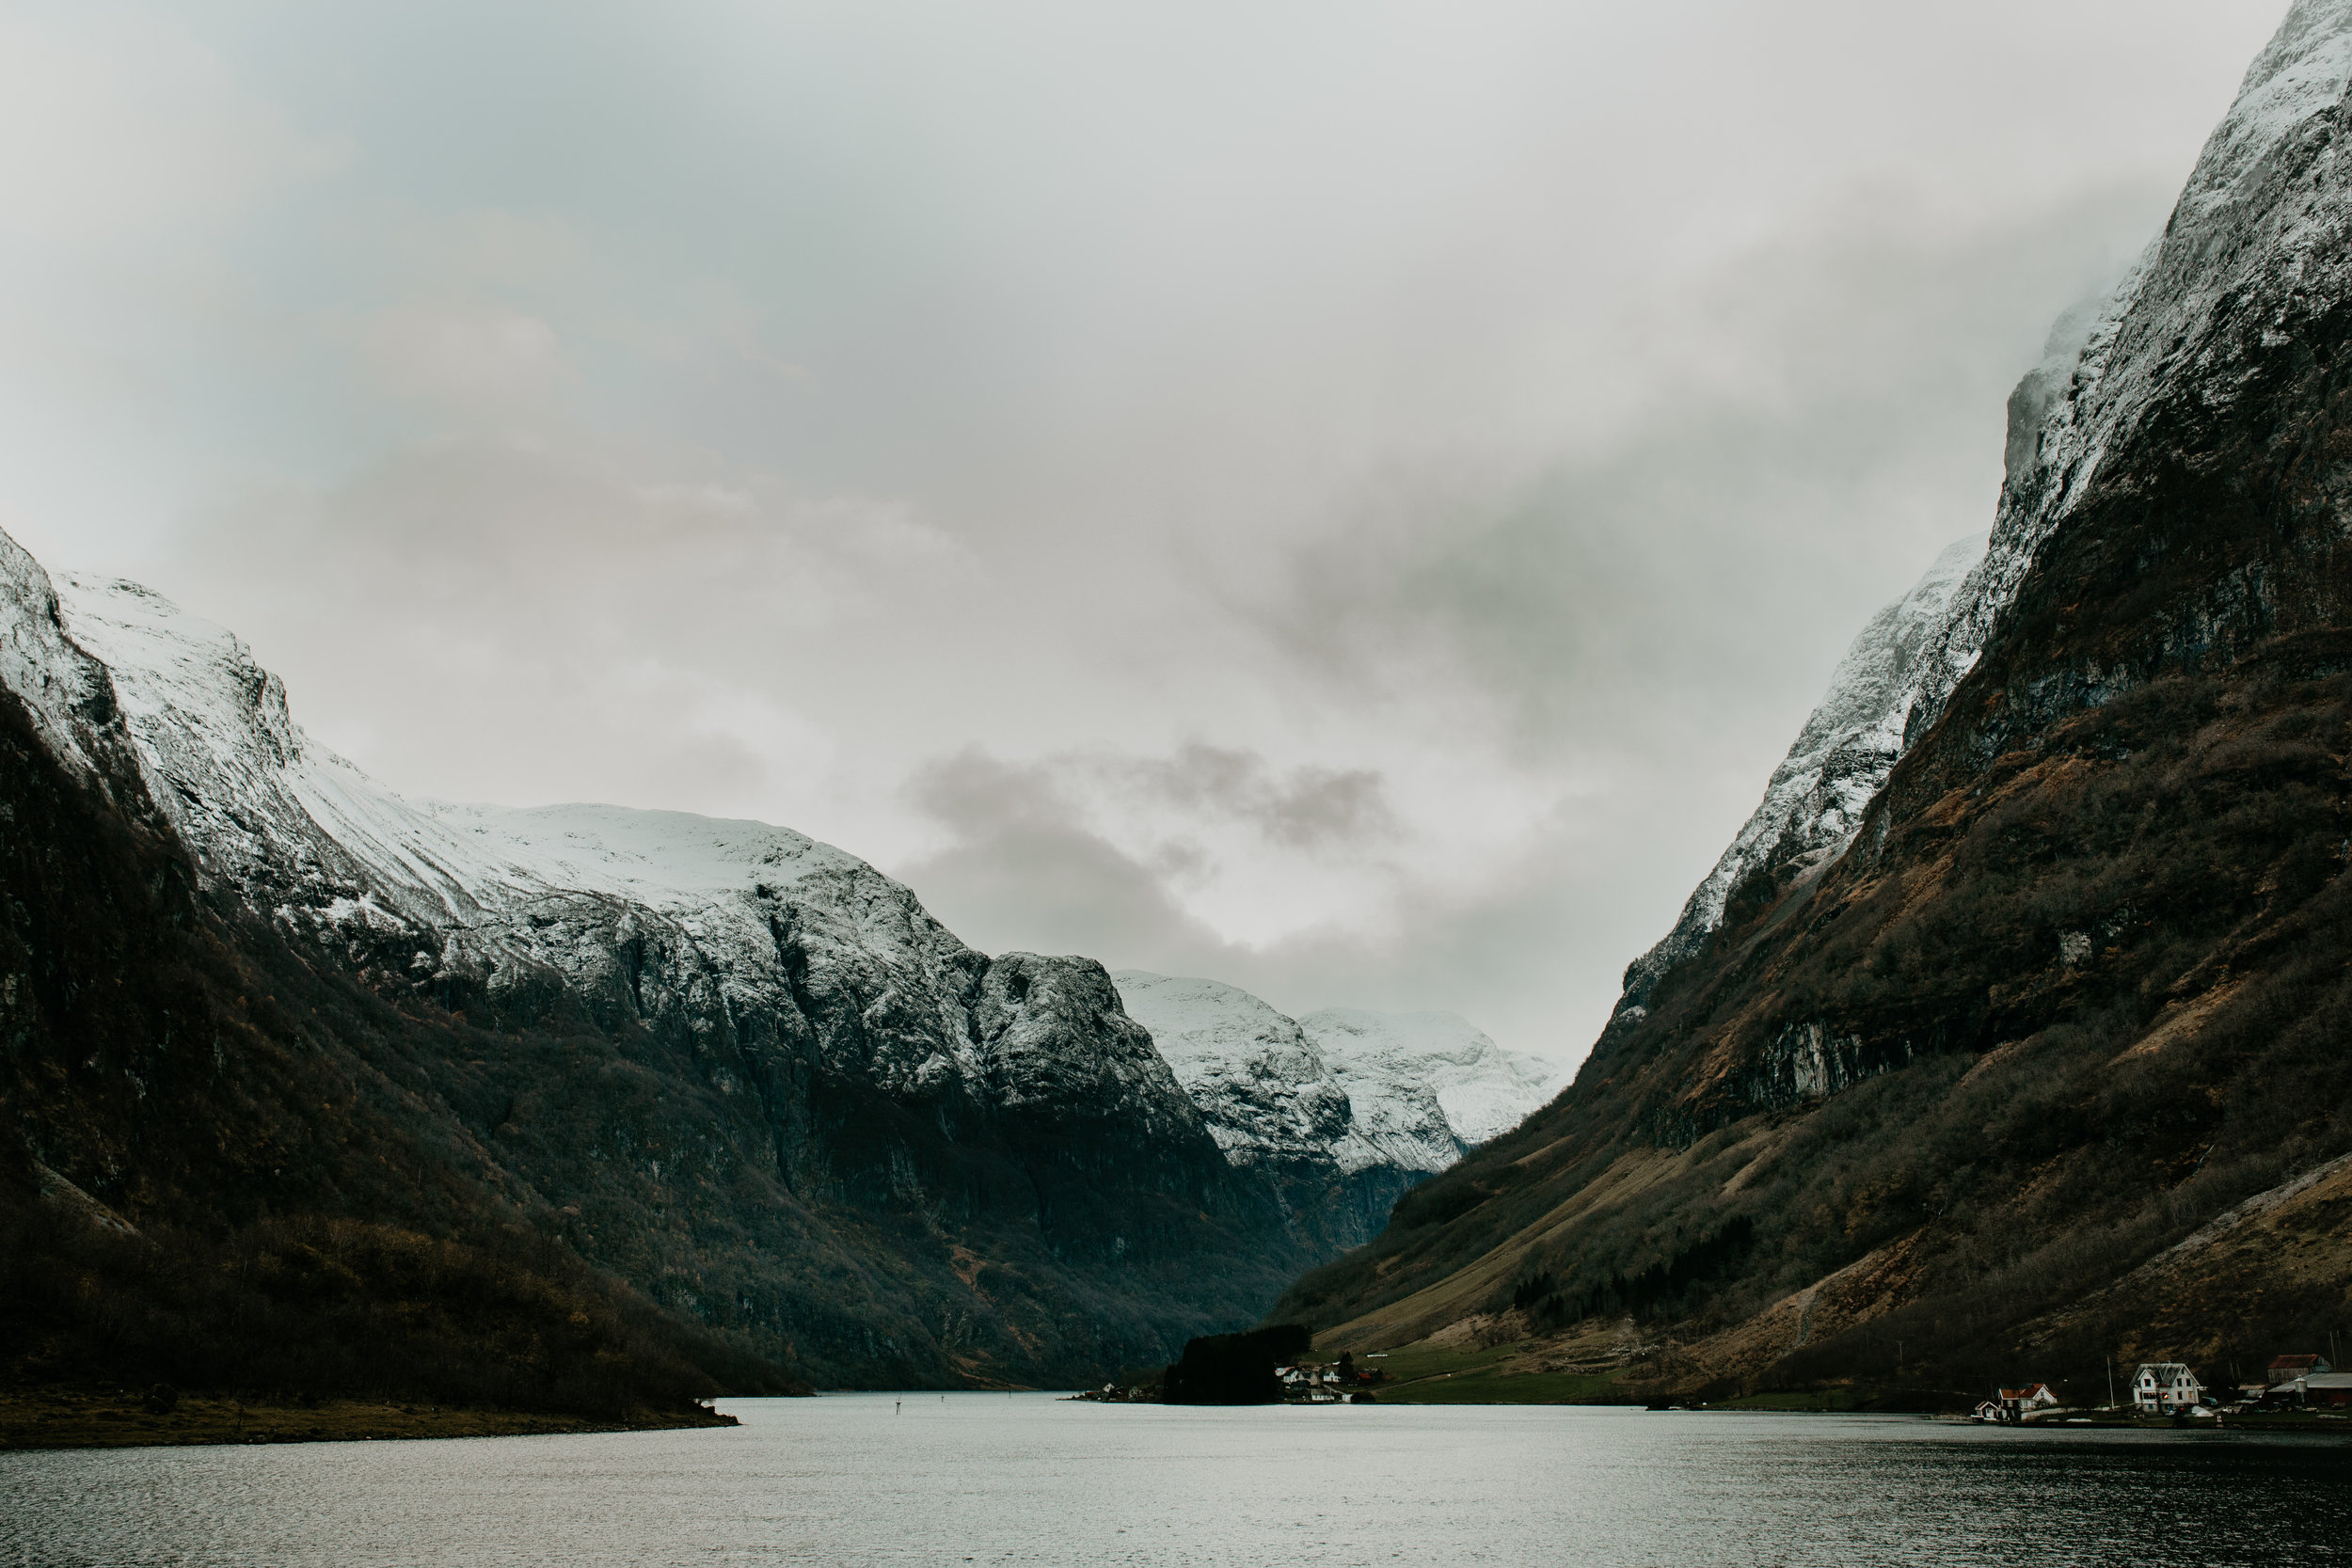 nicole-daacke-photography-norway-bergen-norway-in-a-nutshell-landscapes-elopement-photographer-photography-fall-october-norwegian-air-explore-adventure-9.jpg